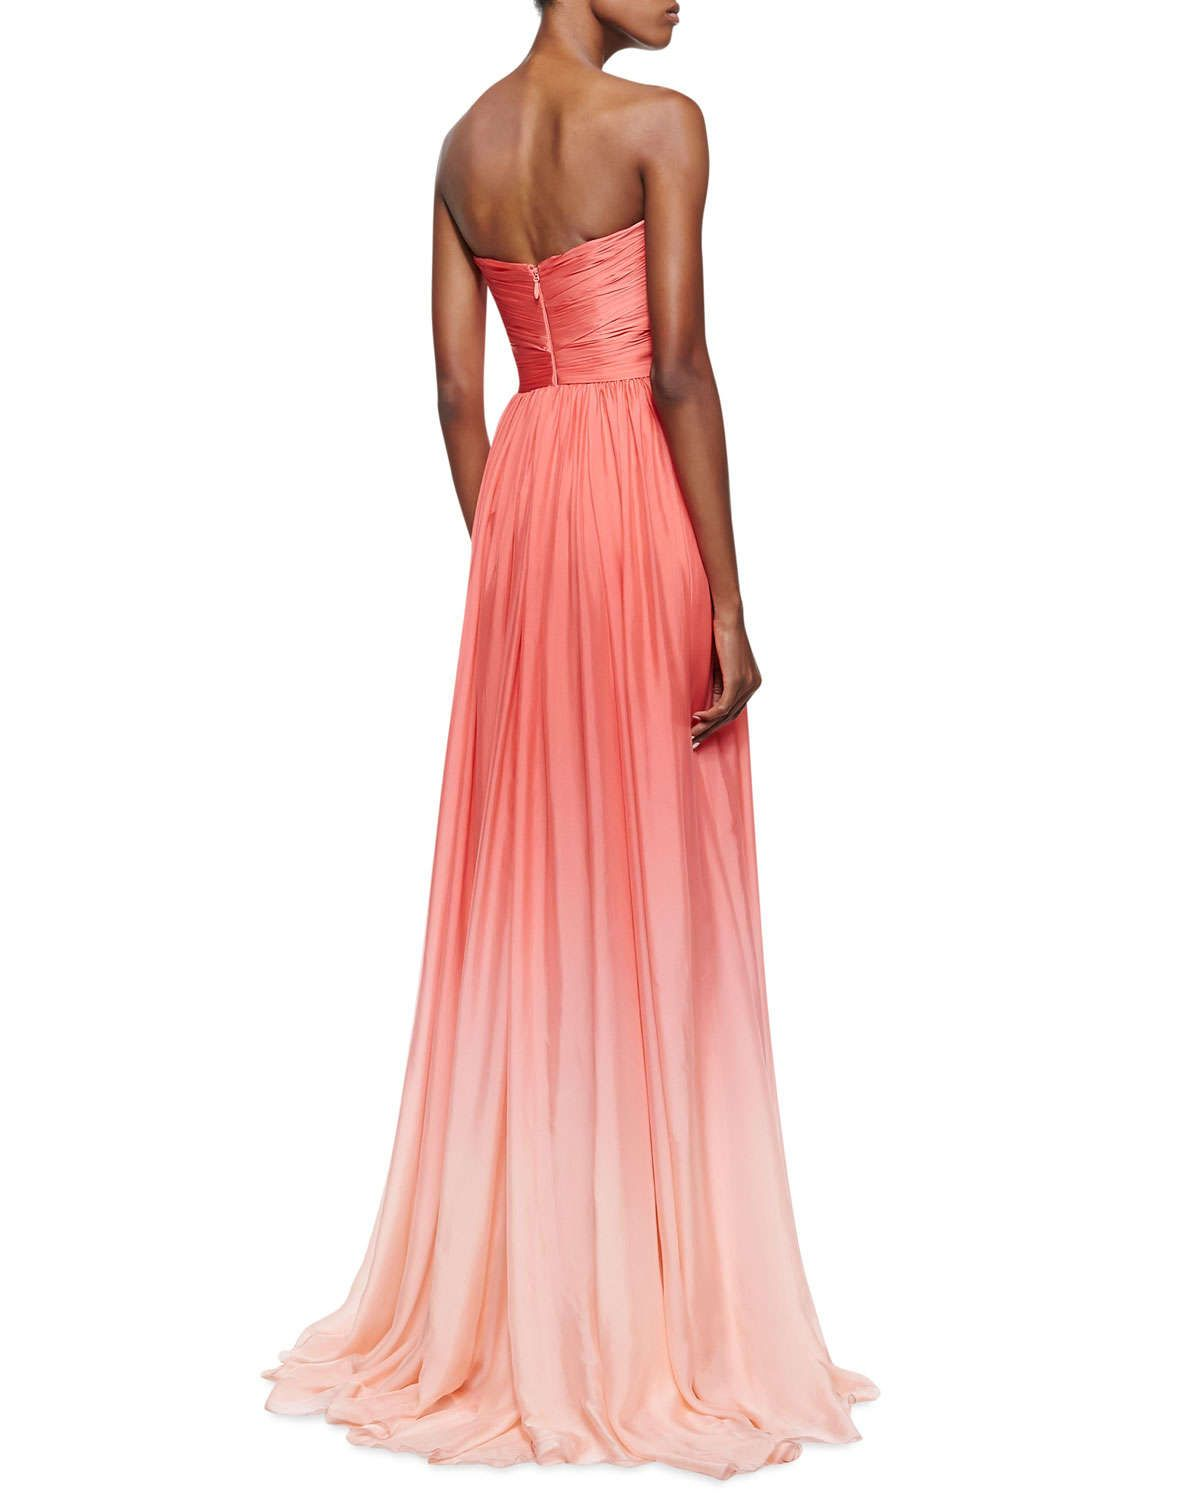 Strapless Ombre Draped Gown, Coral | Formal wear | Pinterest